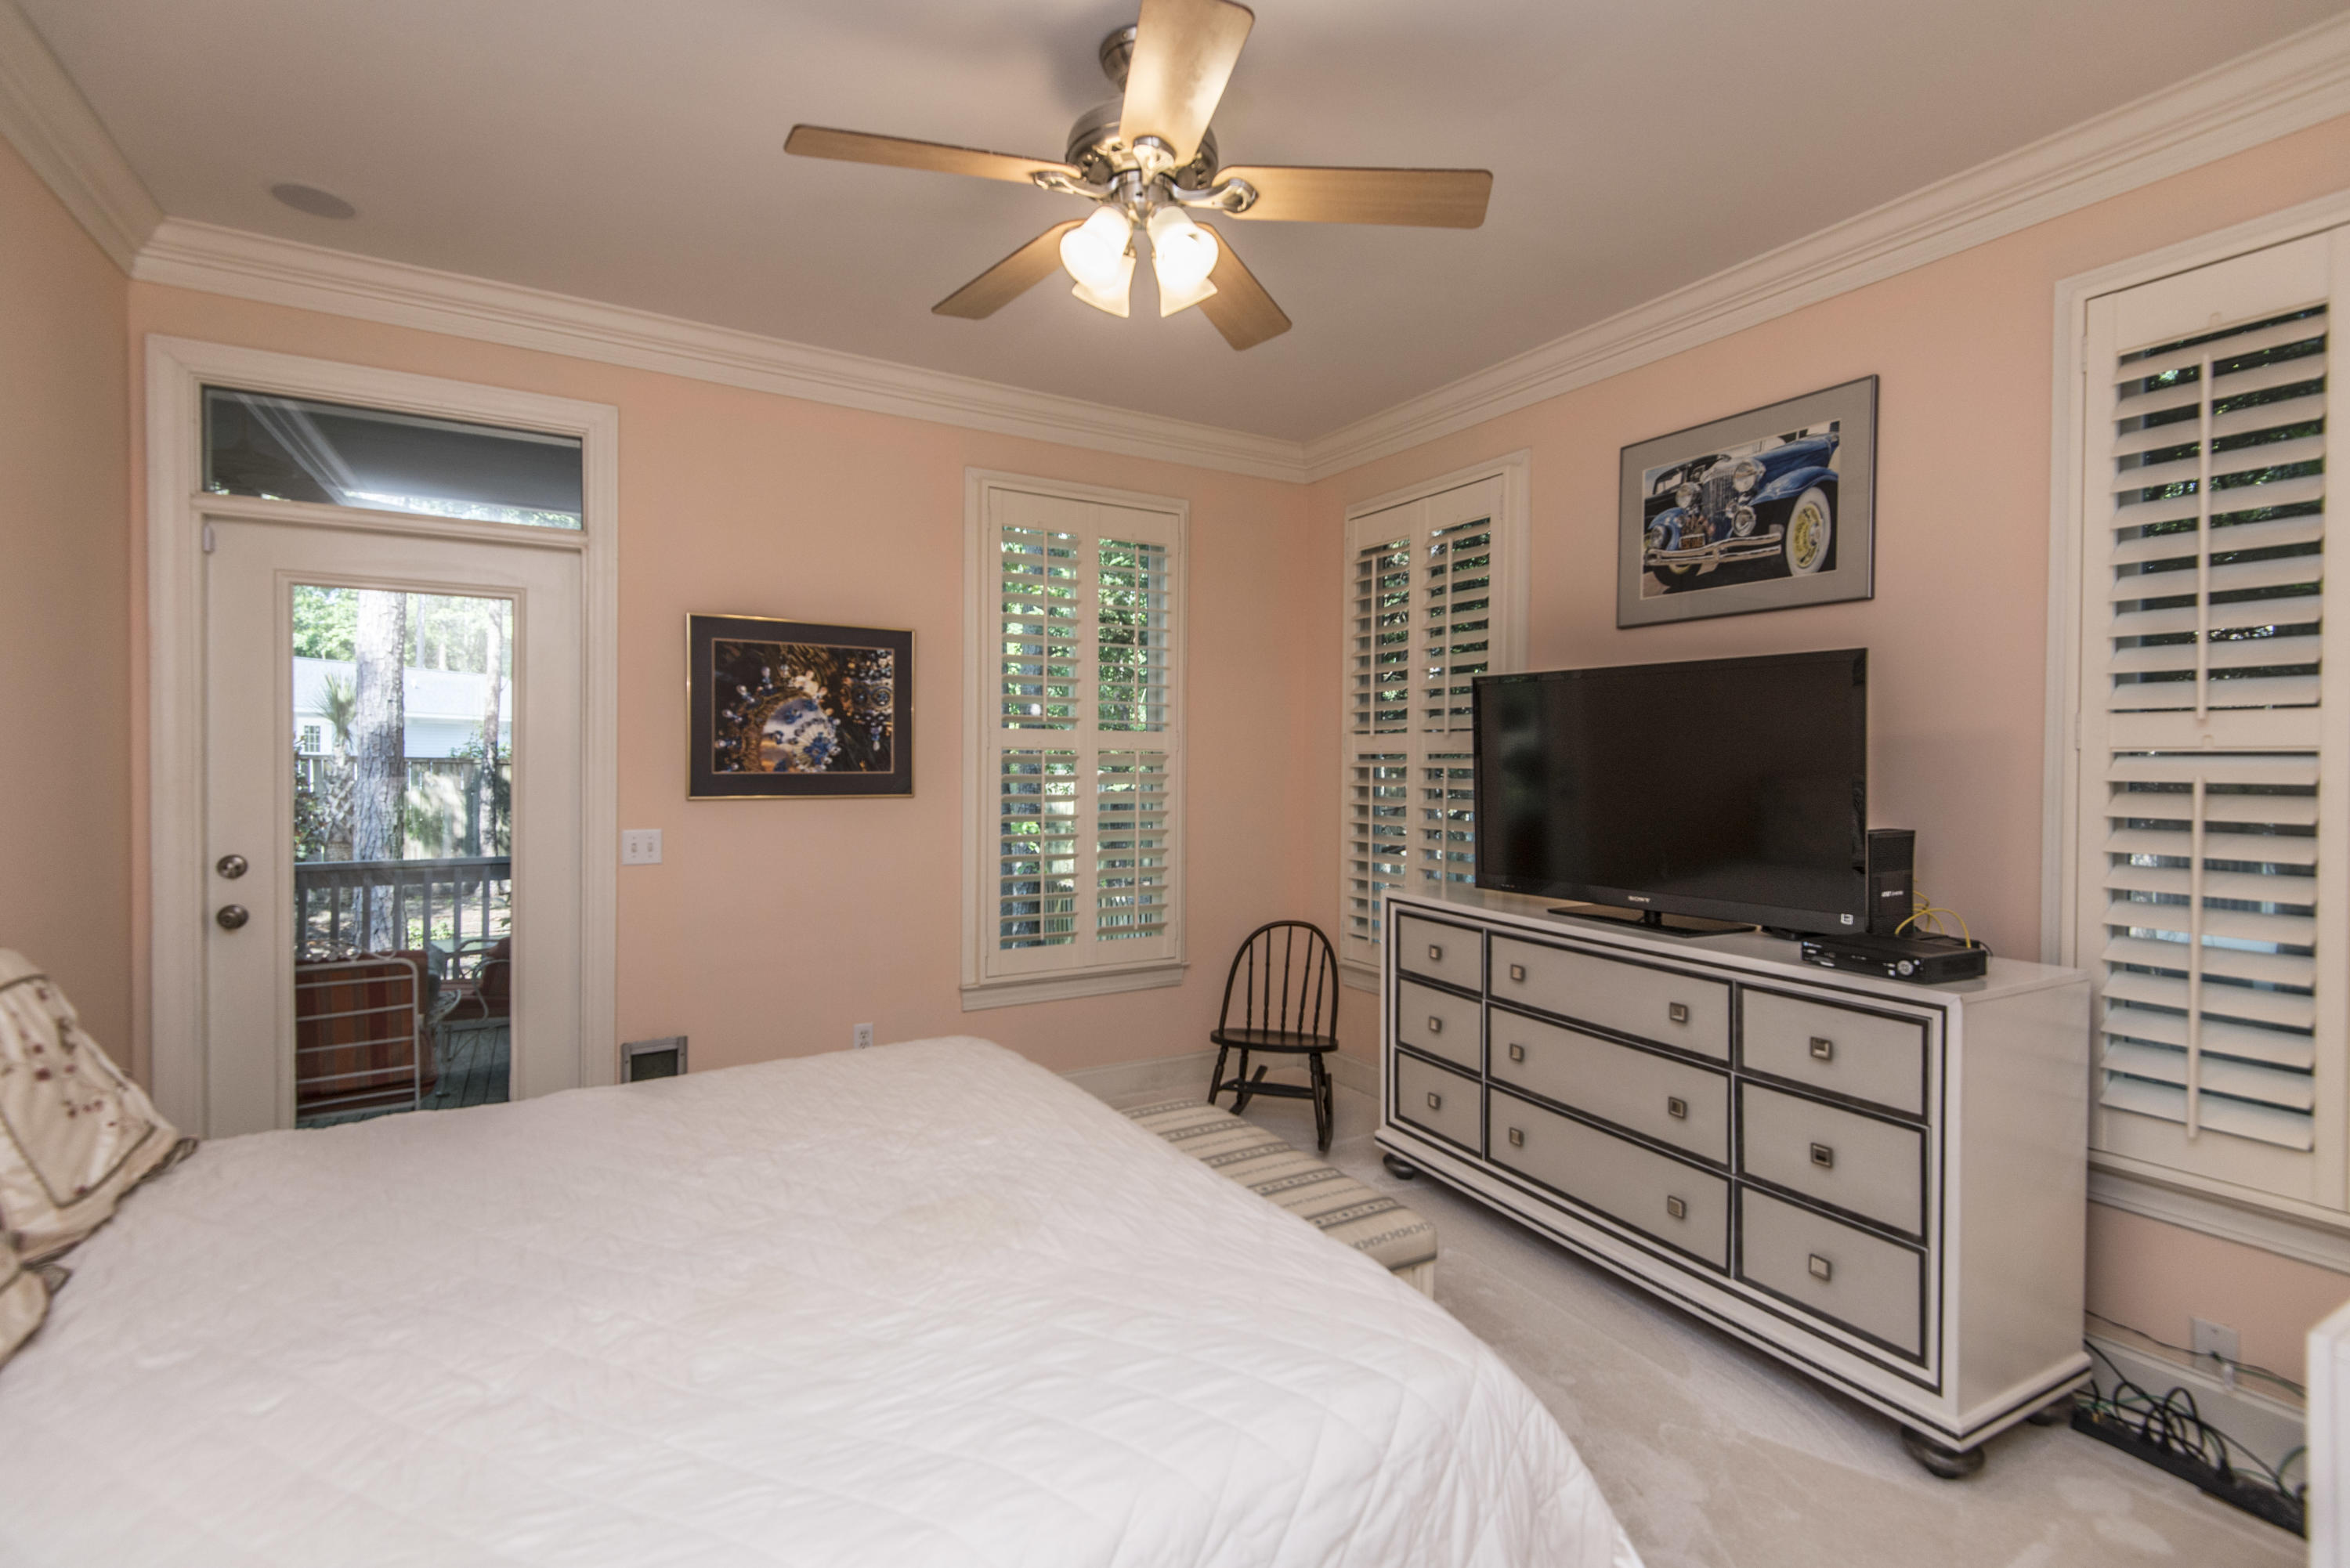 The Villages In St Johns Woods Homes For Sale - 4087 Amy, Johns Island, SC - 2